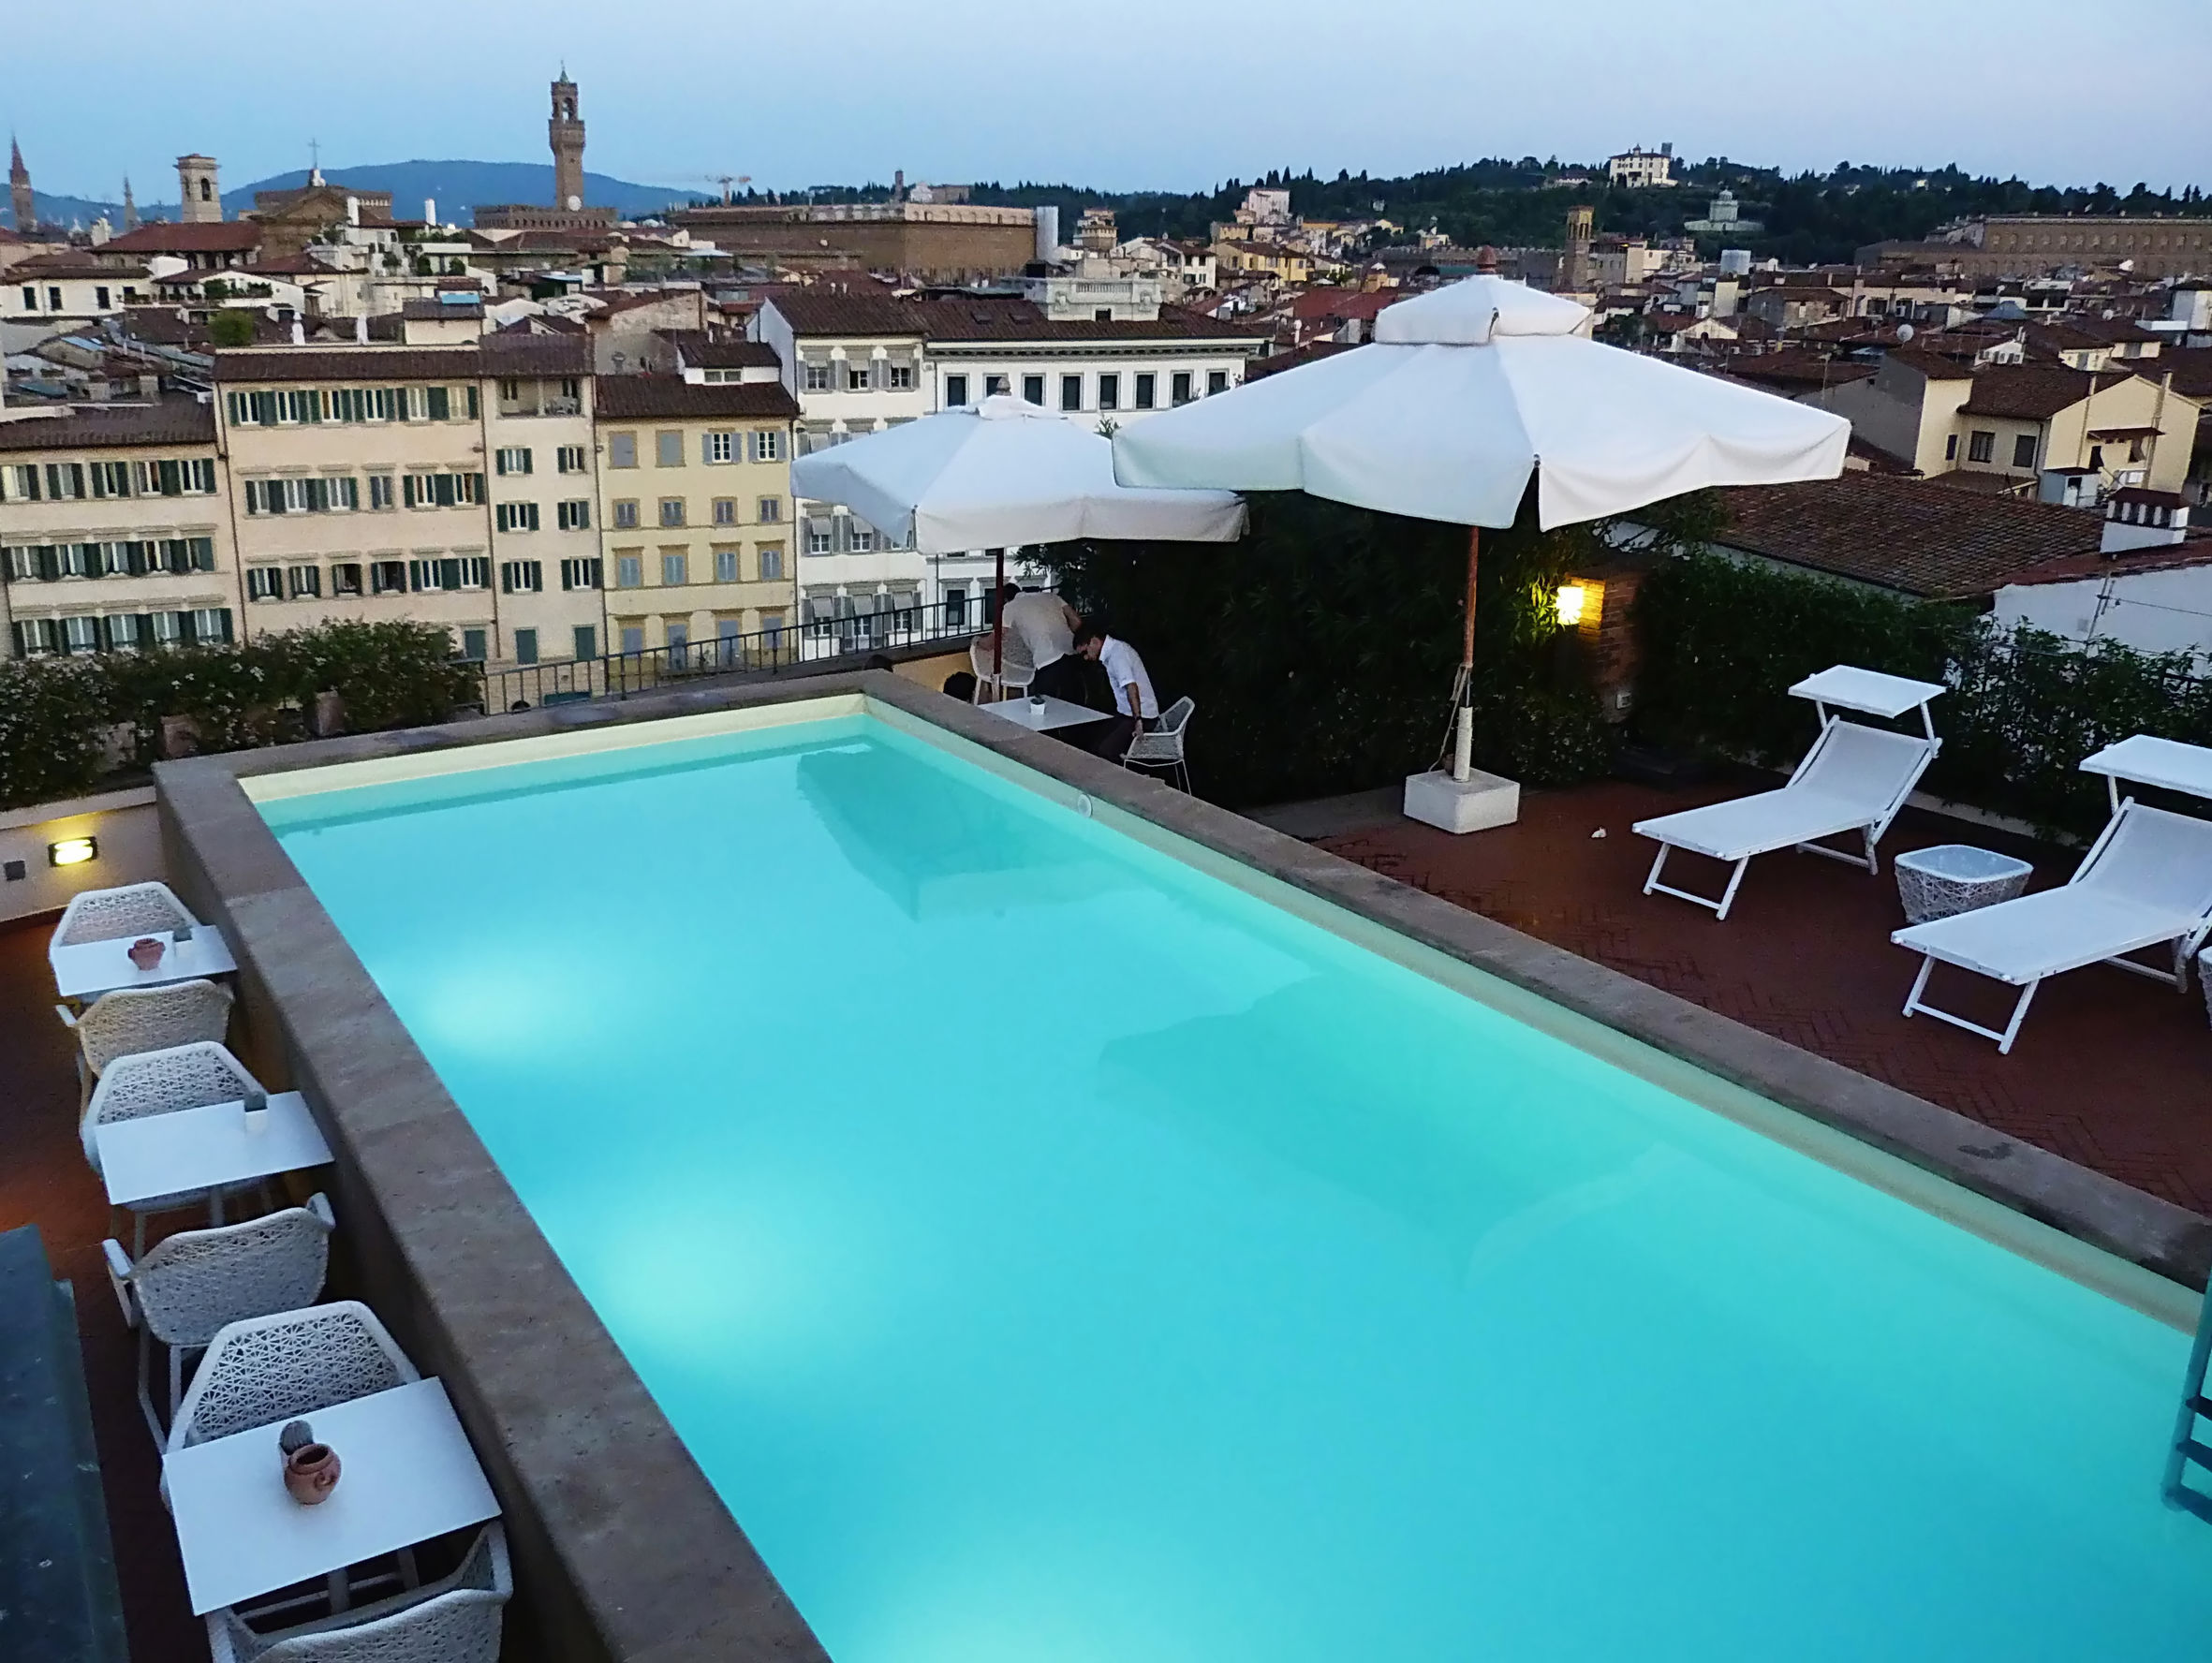 24620461 - view of florence from a rooftop with swimming pool, italy